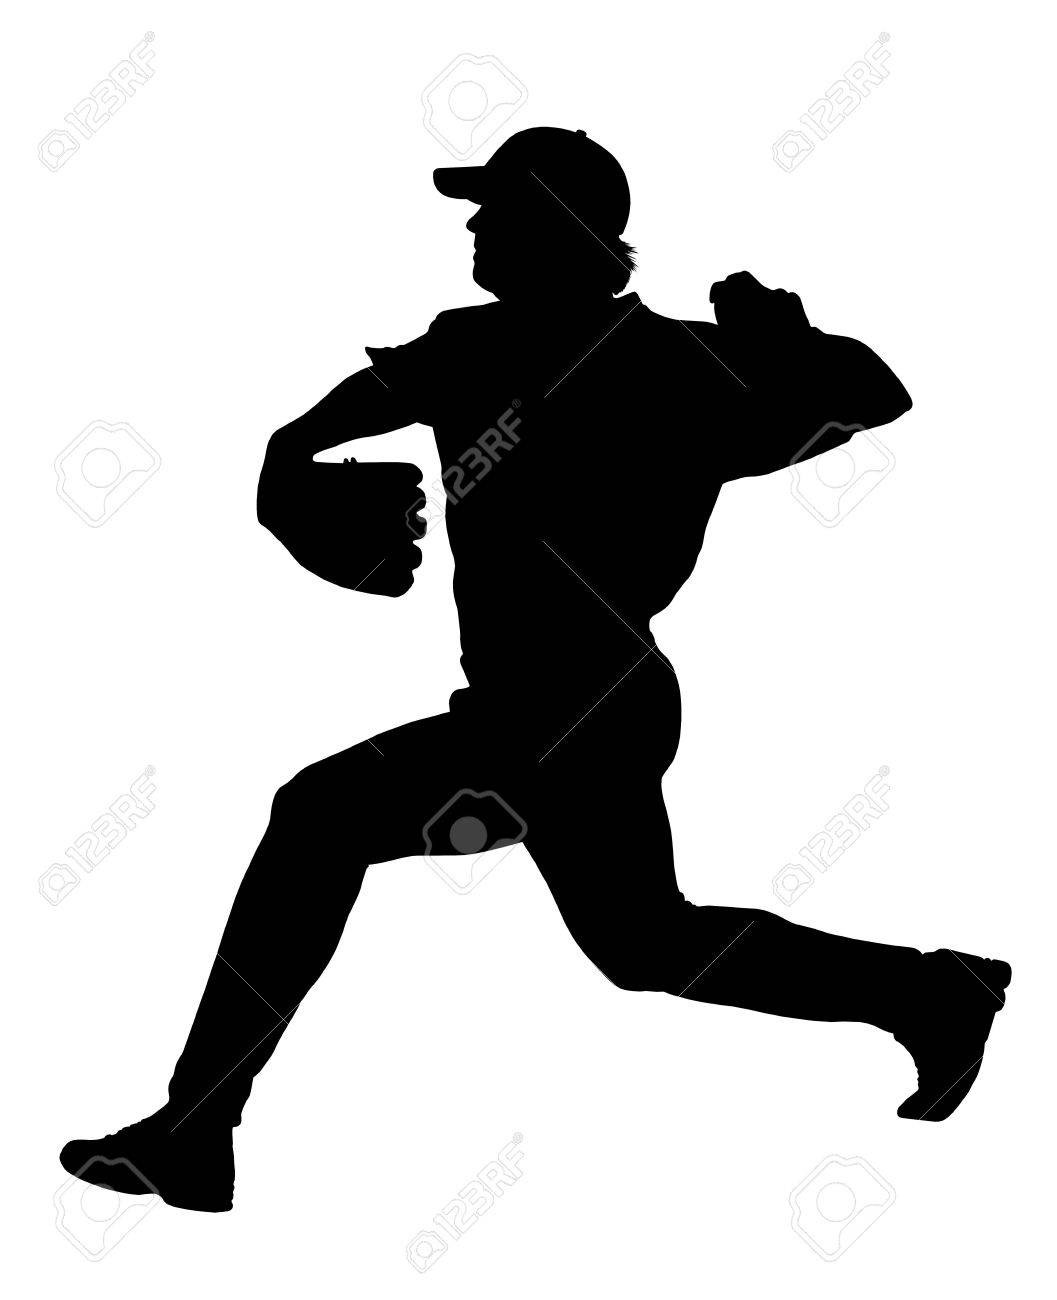 1057x1300 Baseball Player Silhouette Check Out My Portfolio For Other